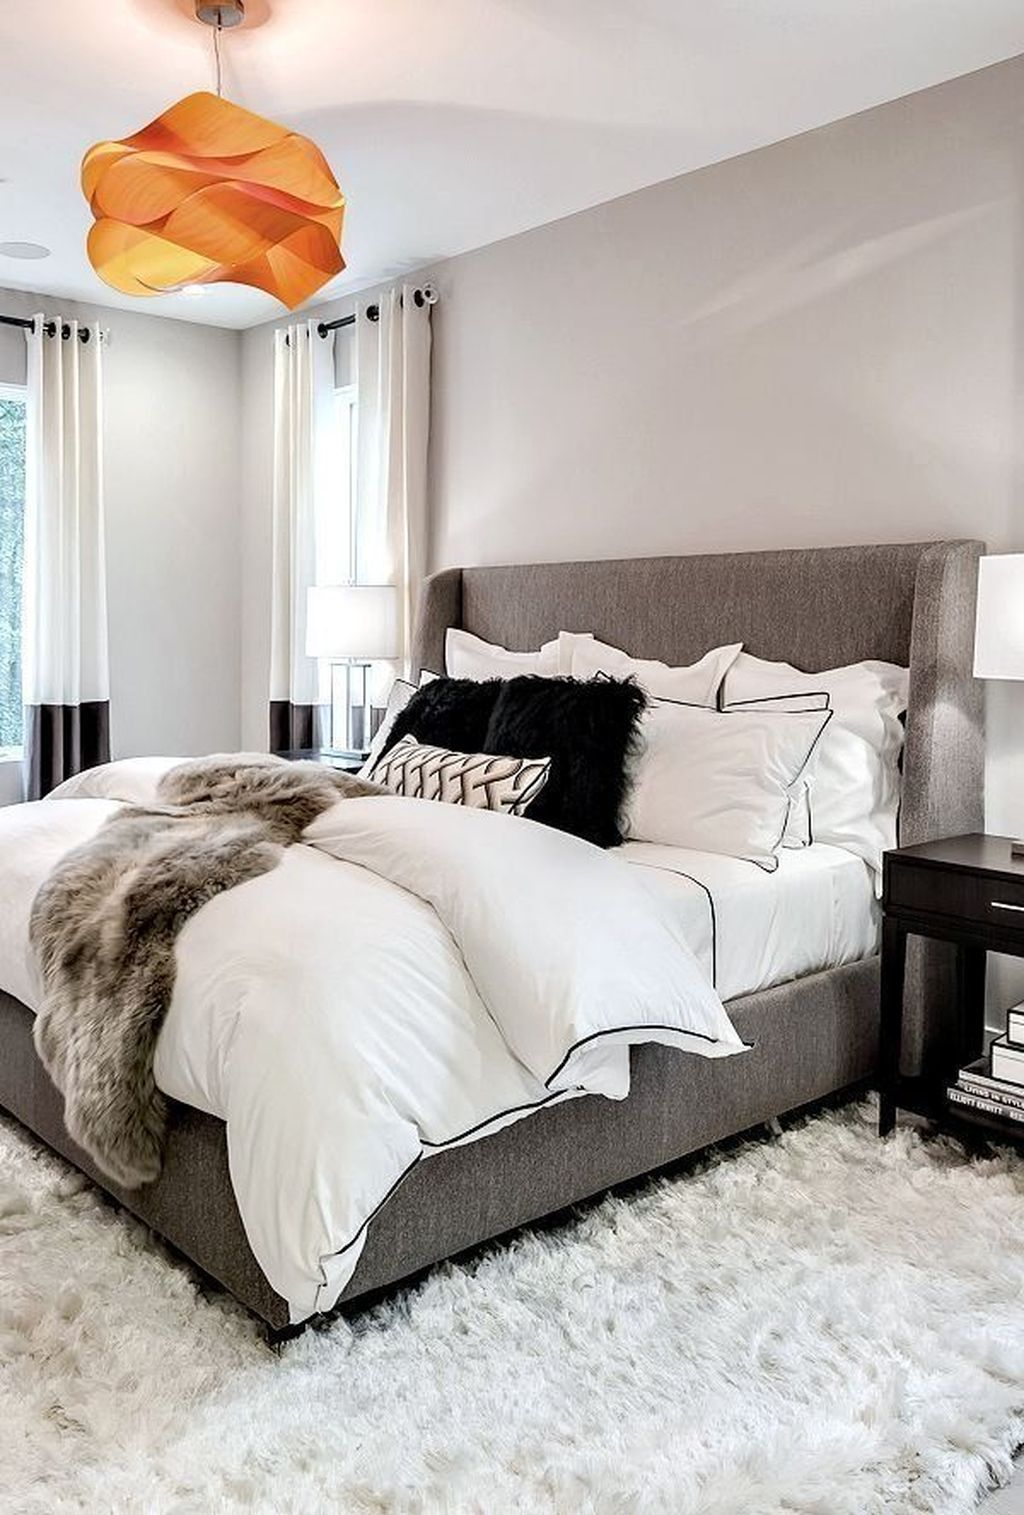 Master bedroom design ideas   Beautiful Neutral Master Bedroom Designs Ideas  Master bedroom